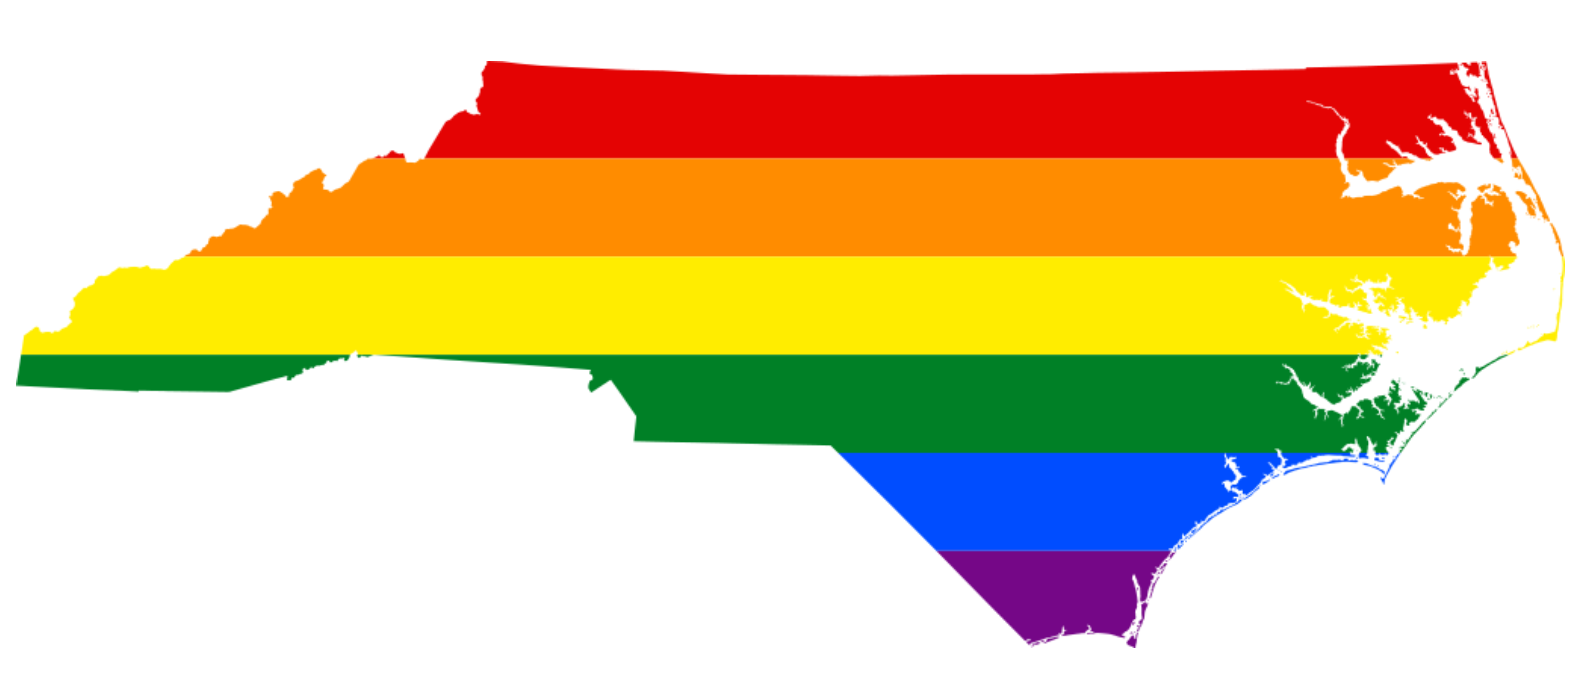 North Carolina in LGBT rainbow colors